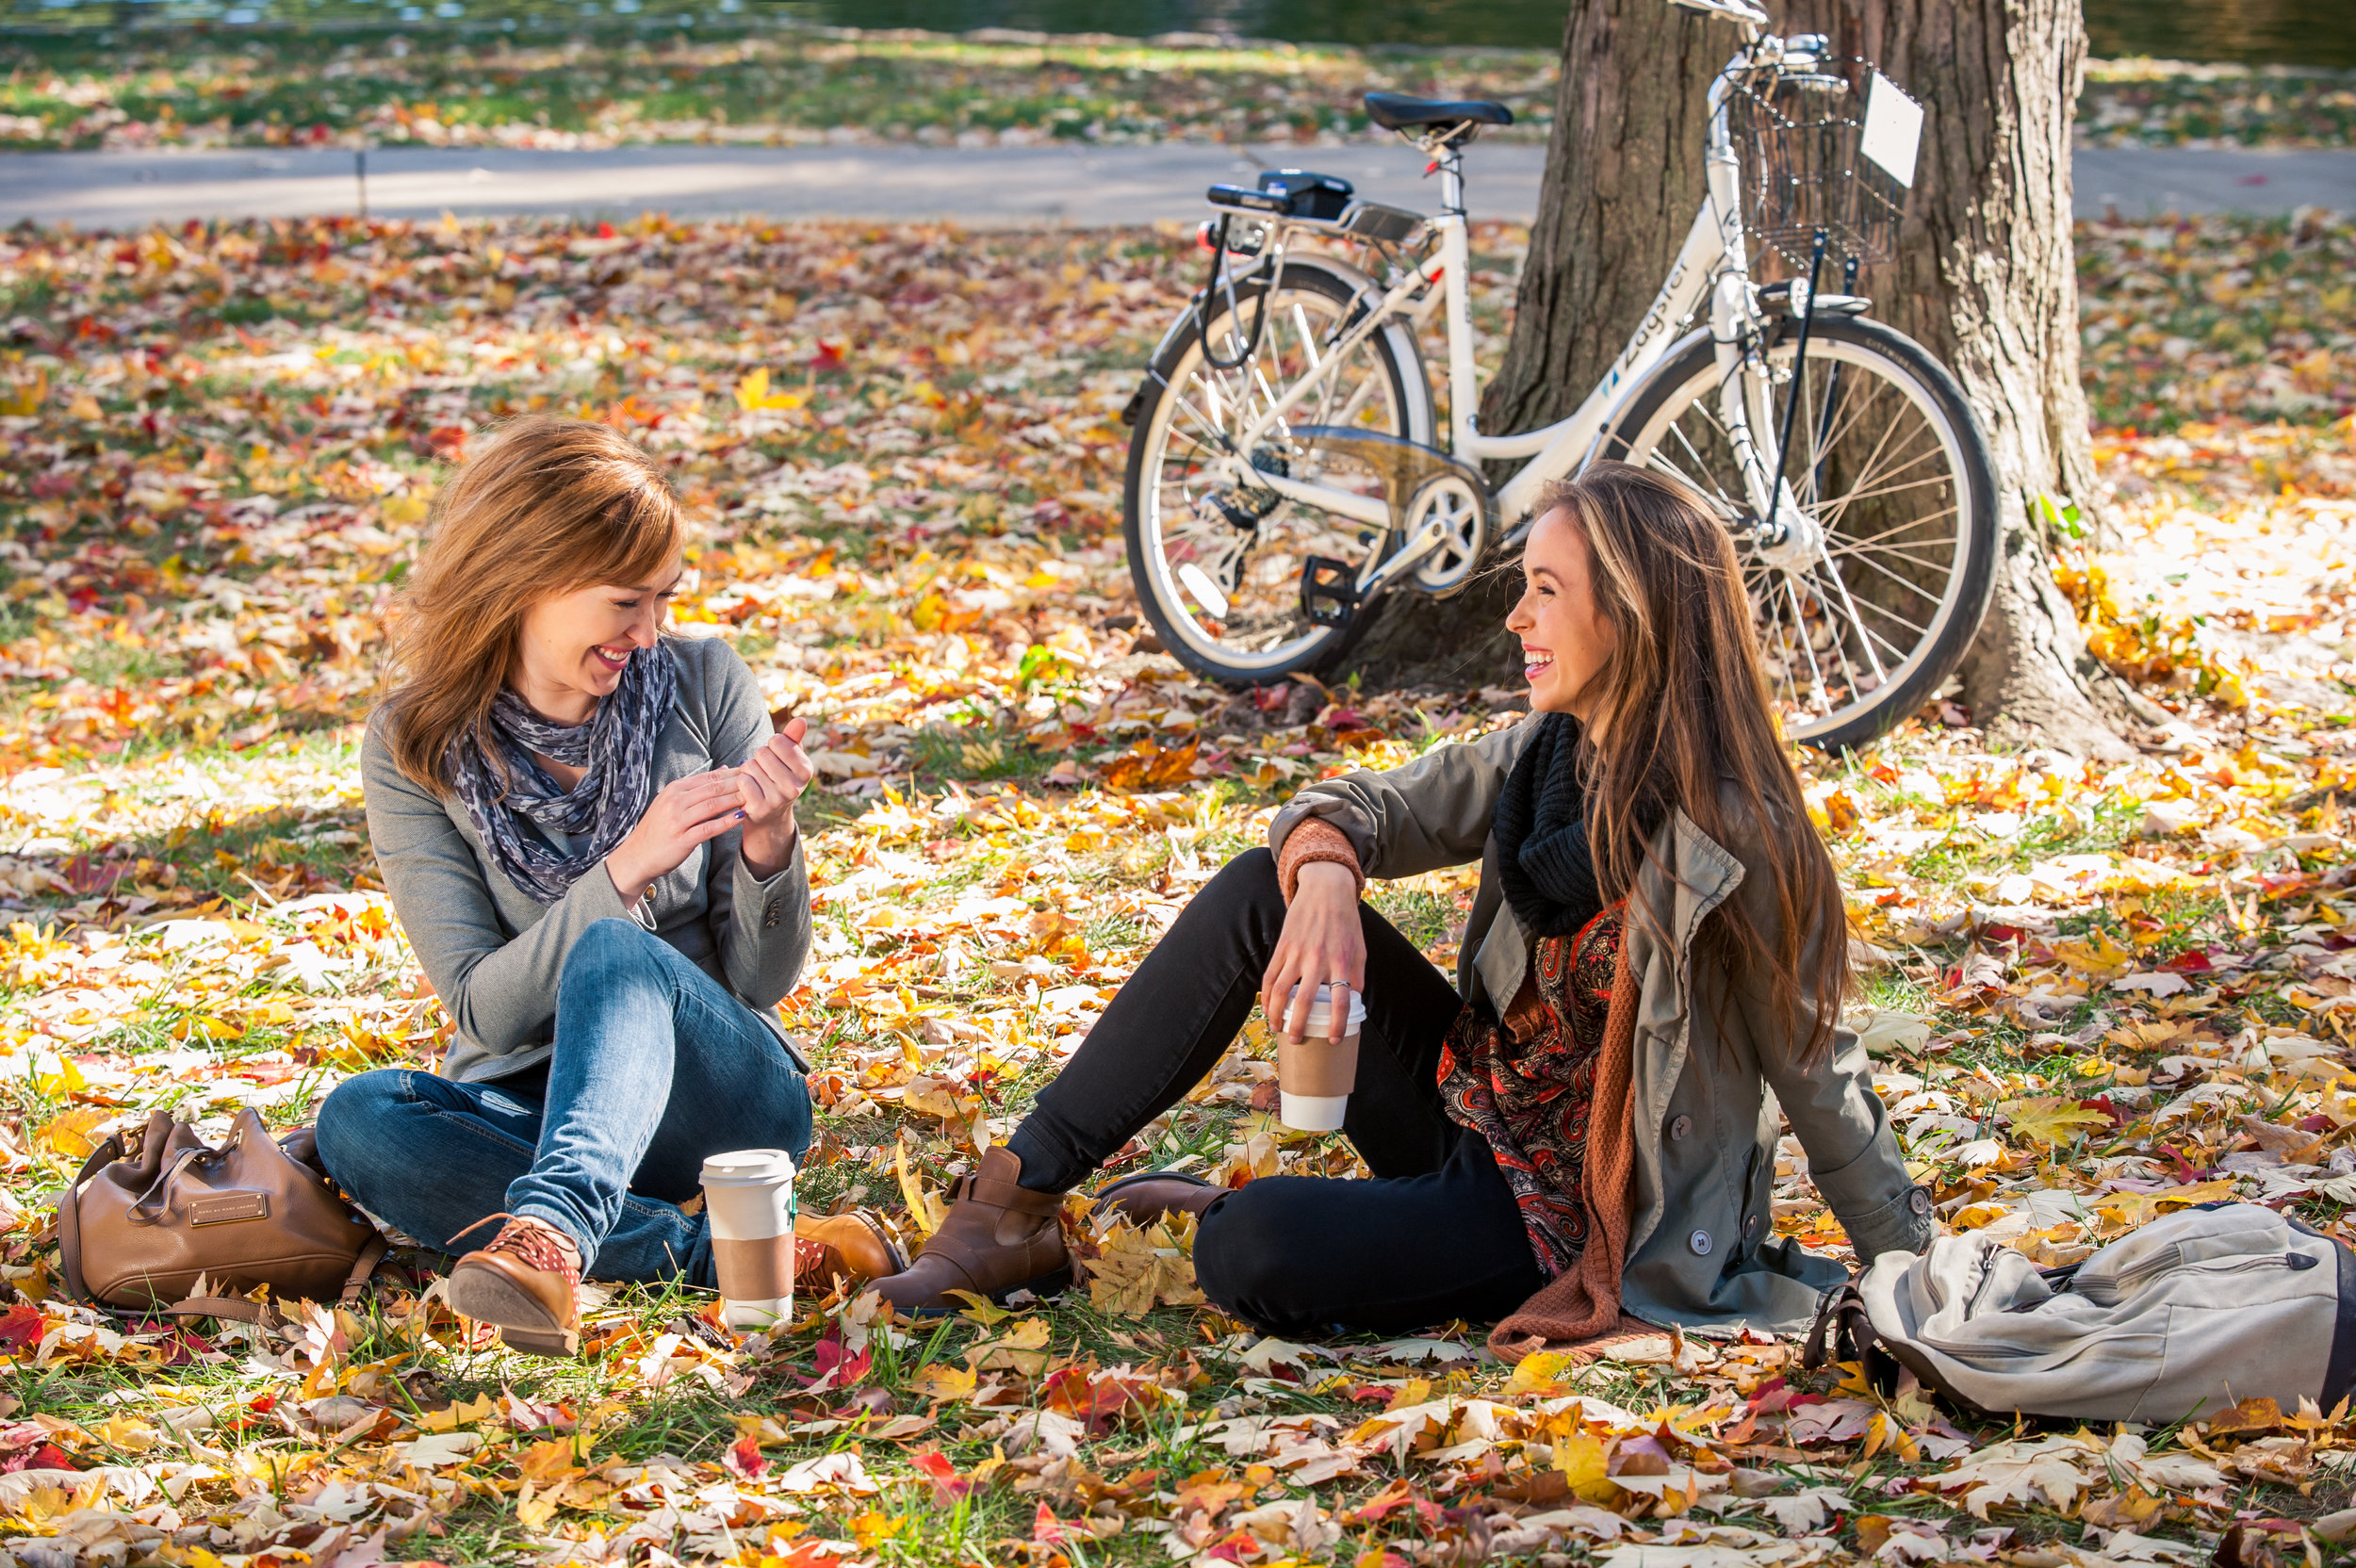 When we made this image, there was a really annoying lamp post almost growing out of Jess's head. We also had to nix some branding off of everyone's favorite overpriced coffee. Beyond that, these are two real girl's, enjoy real coffee, on a really beautiful fall day.